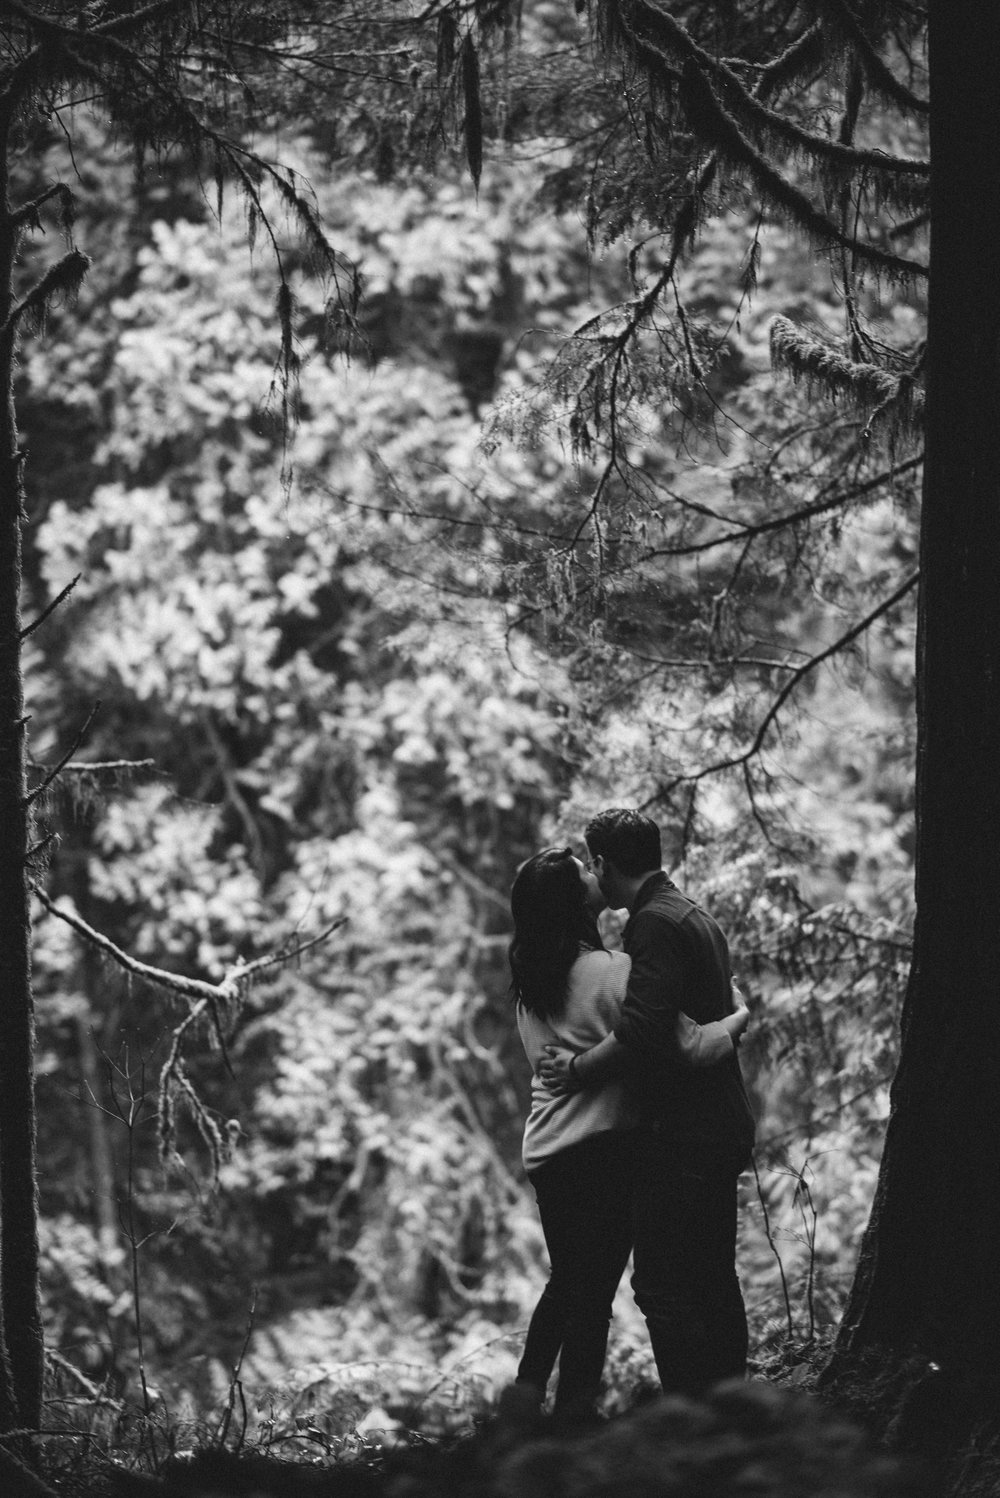 Couple embracing in forest black and white